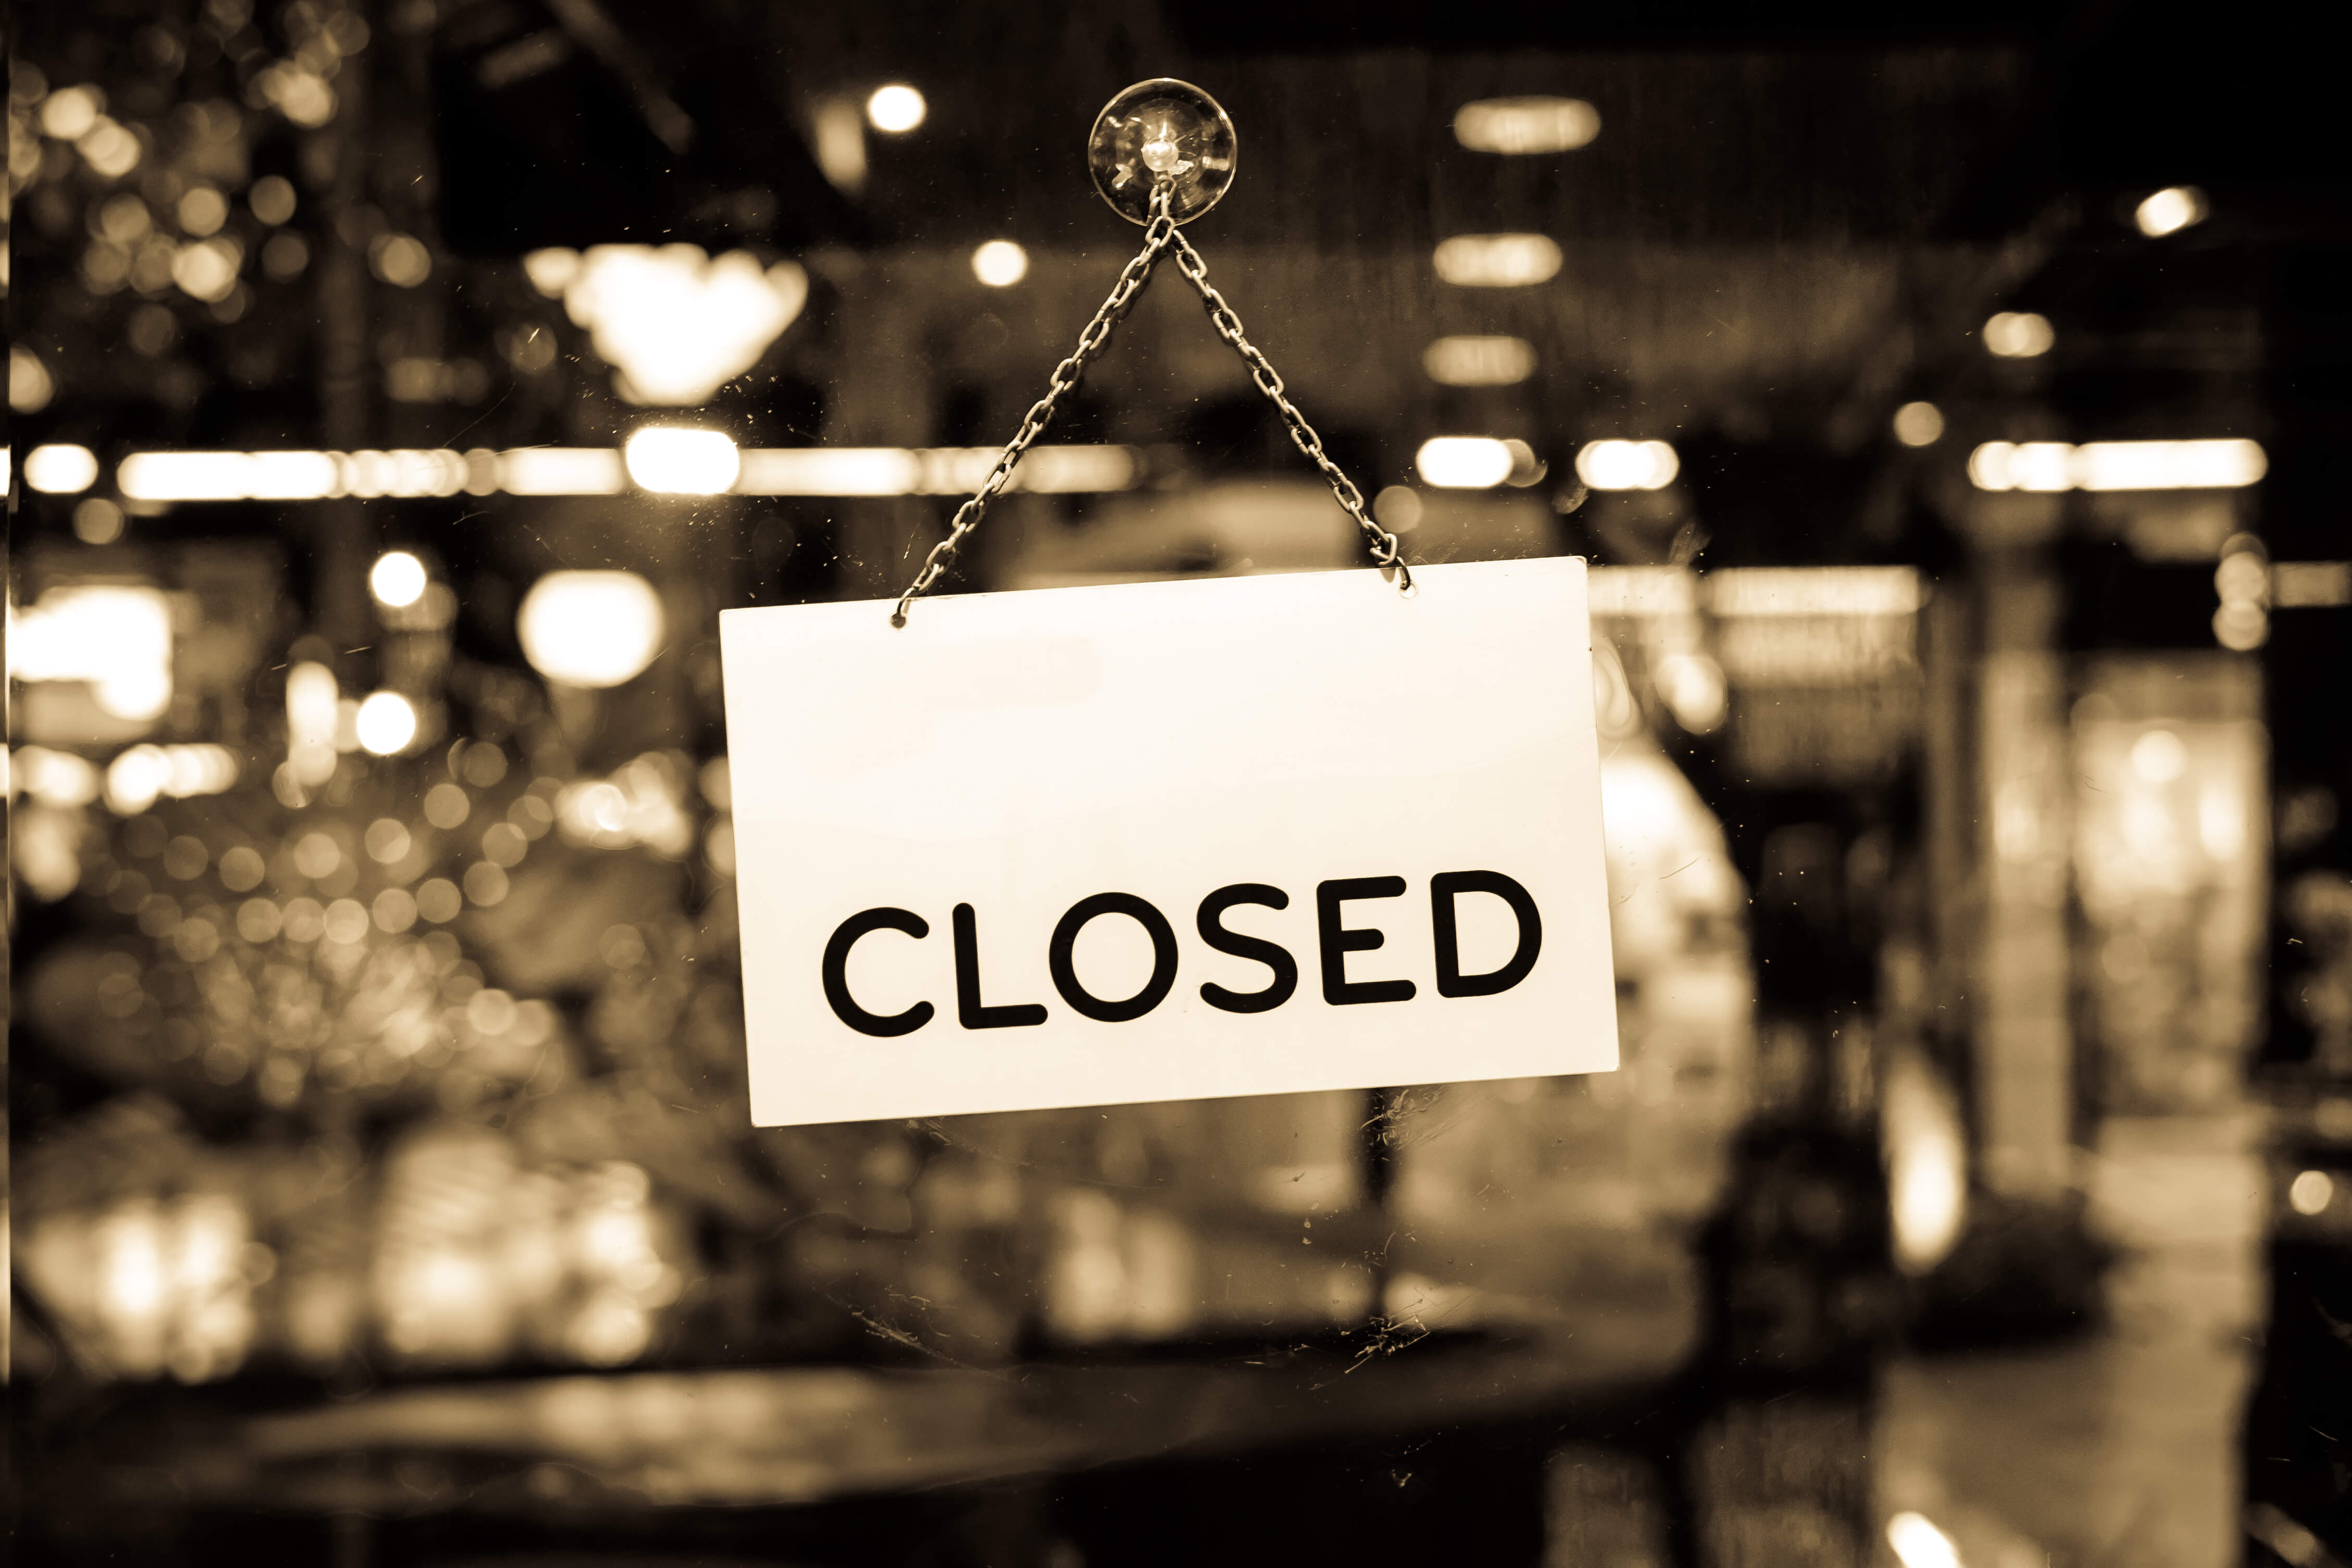 Closed - January 21st - MLK Day